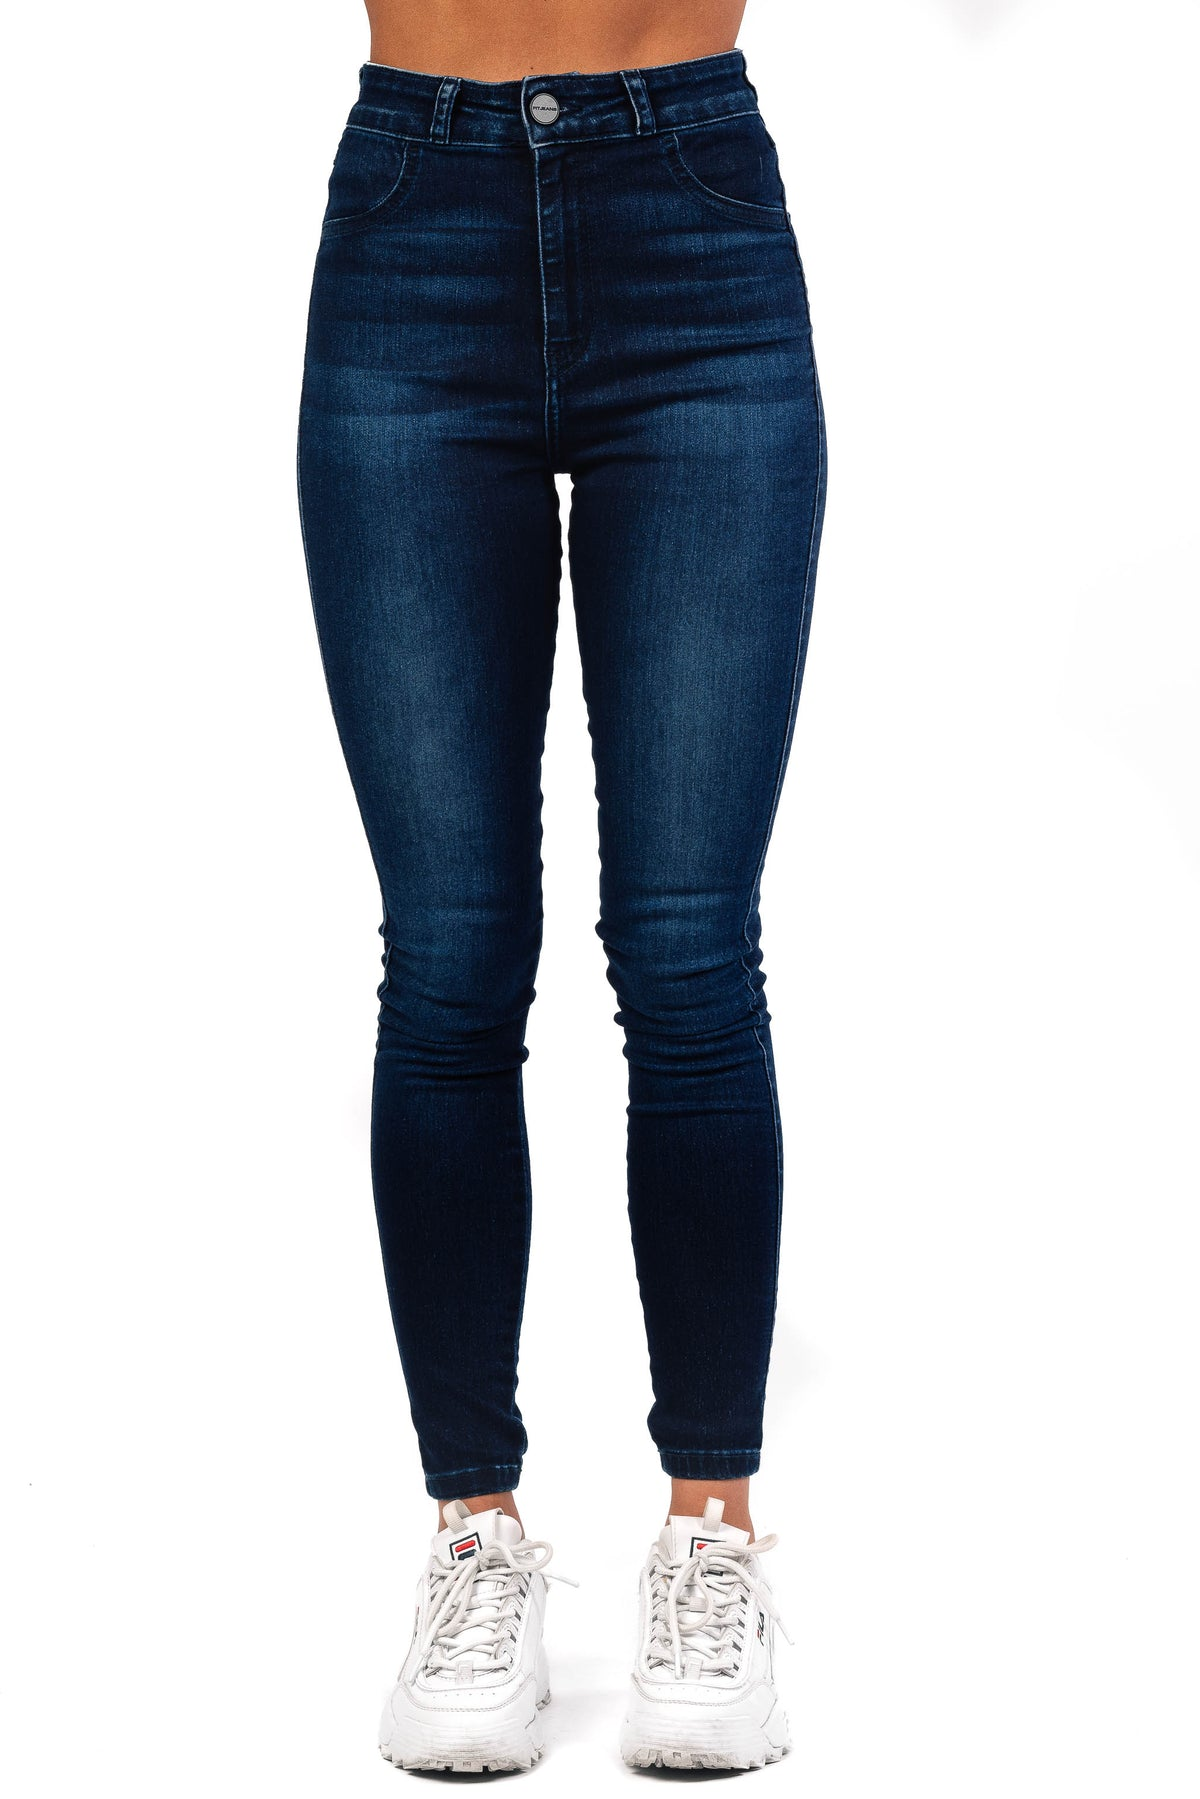 Womens Traditional High Waisted Fitjeans - Deep Indigo